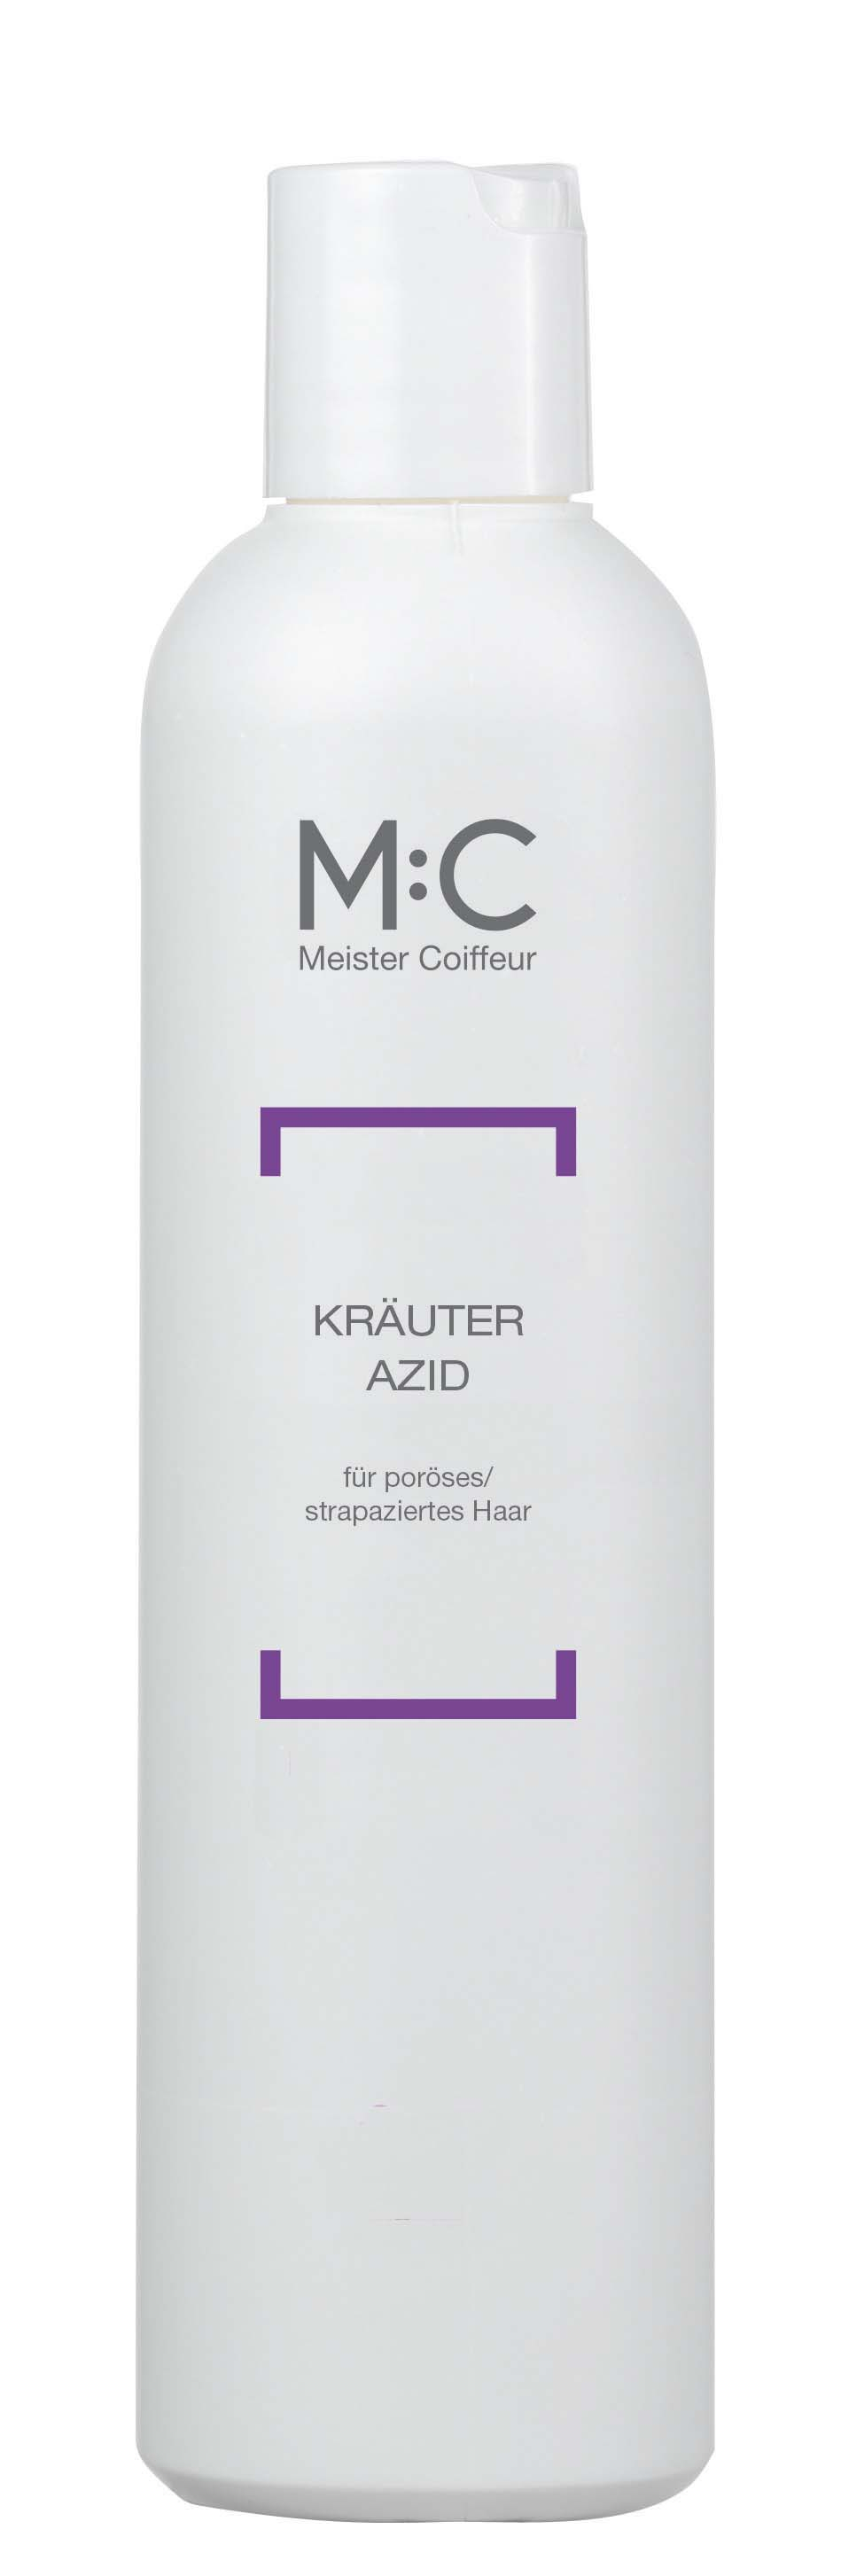 M:C Conditioner Herbal P 250 ml